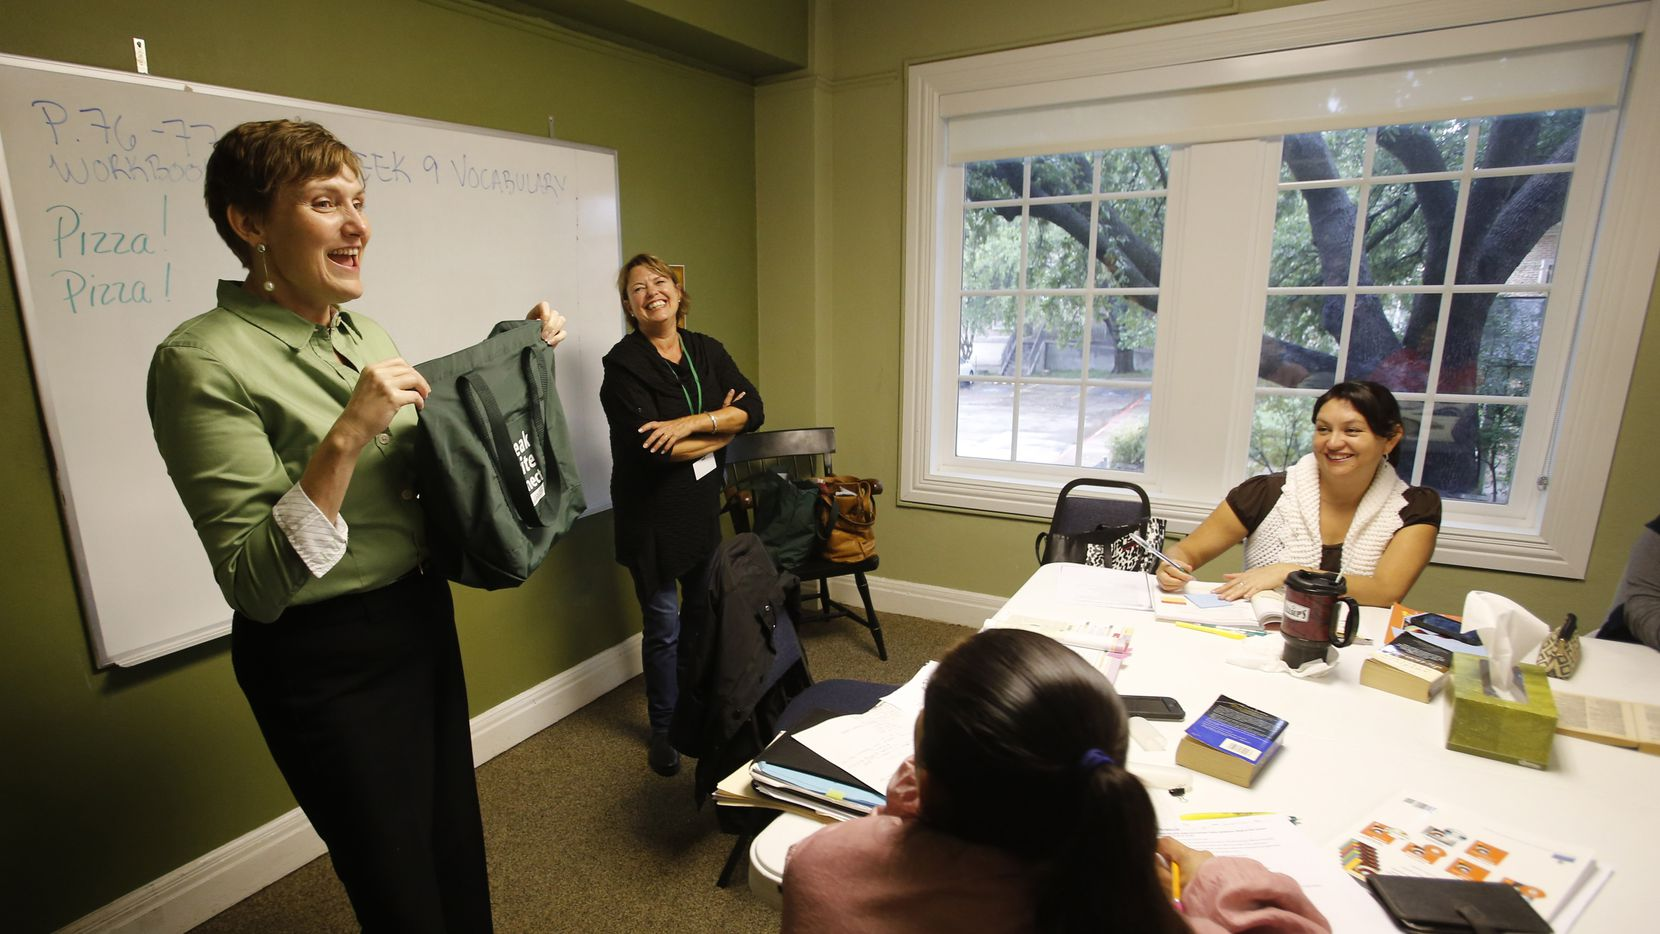 Executive Director Shana Harrison, left, of the Aberg Center for Literacy, offers some advice in an ESL class on Wednesday, November 5, 2014. Harrison will become the chief program officer of a new non-profit when the Aberg Center merges with Literacy Instruction for Texas later this year. (Louis DeLuca/The Dallas Morning News)